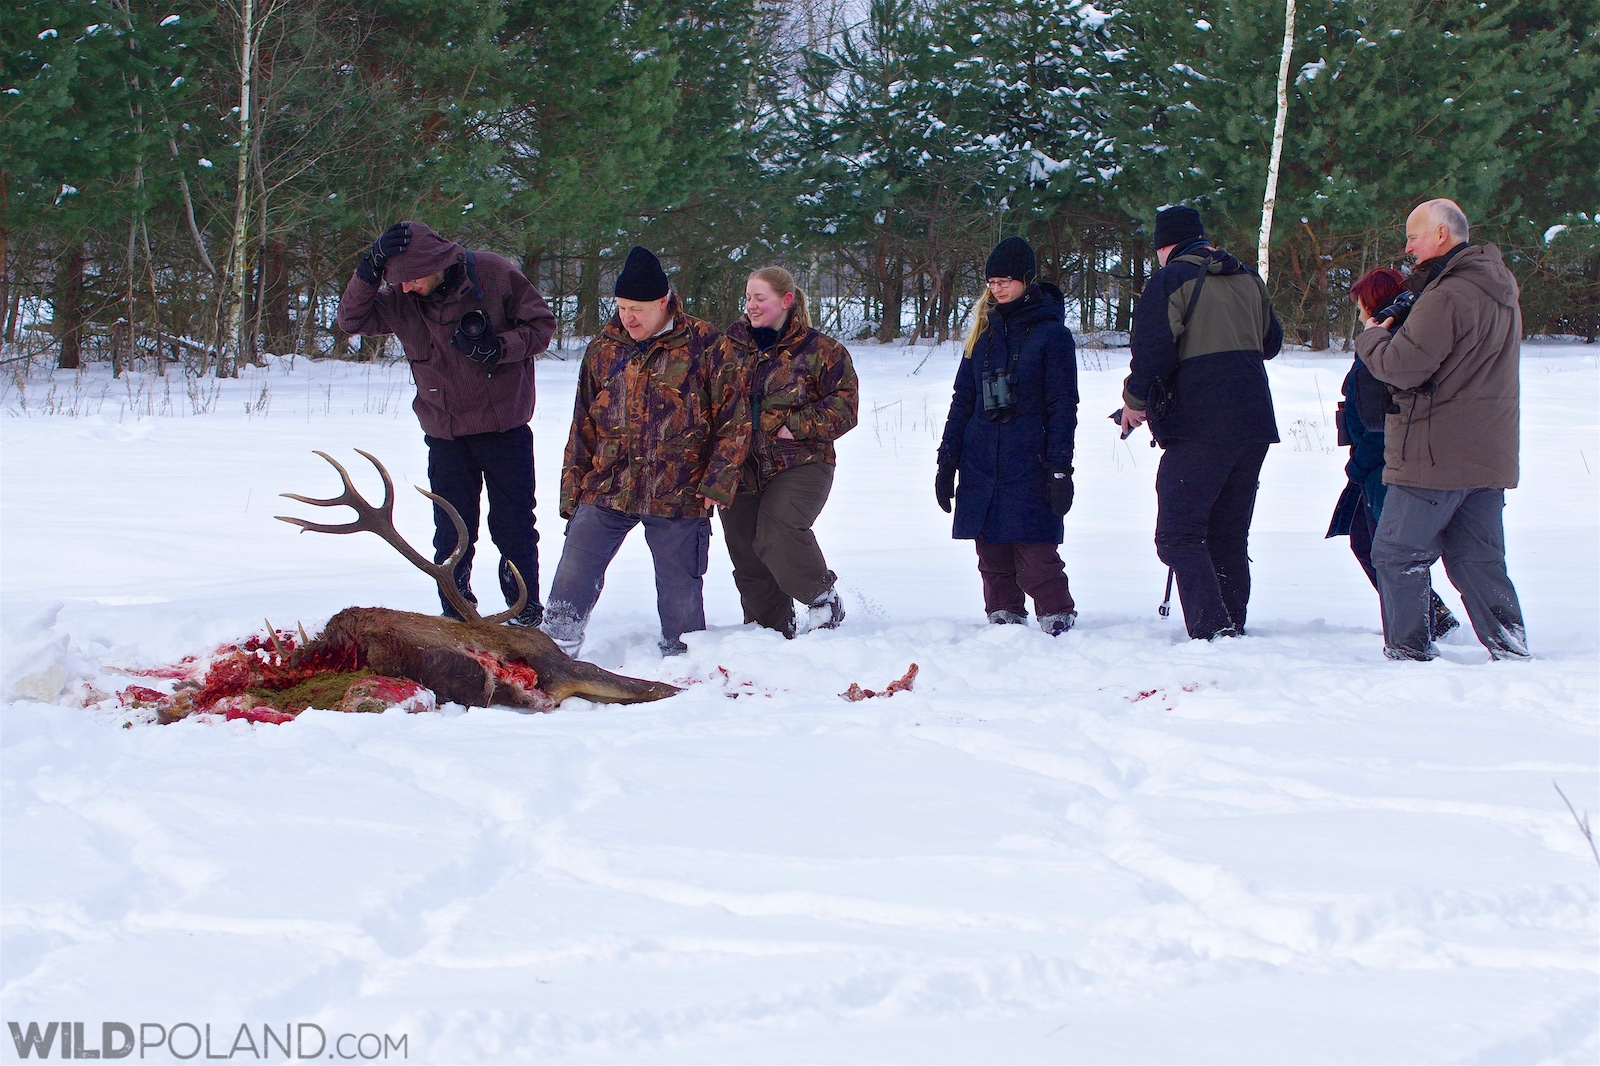 Our group at the recent wolf kill - a Red Deer stag, Białowieża Forest